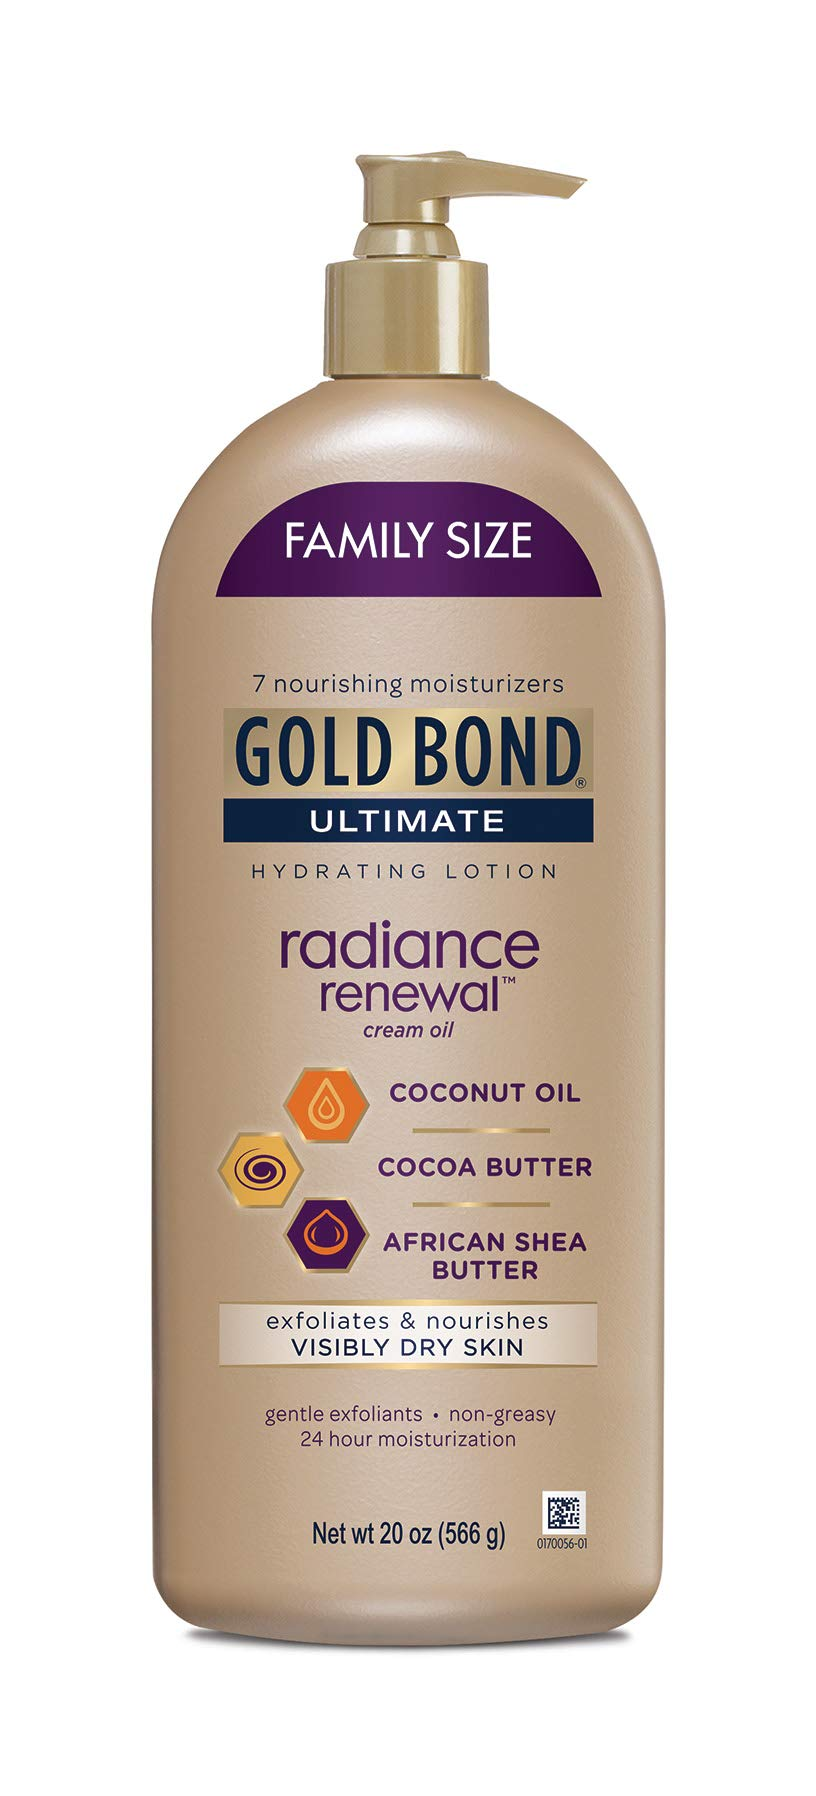 Gold Bond Ultimate Radiance Renewal for Visibly Dry Skin Lotion, 20 Ounce by Gold Bond